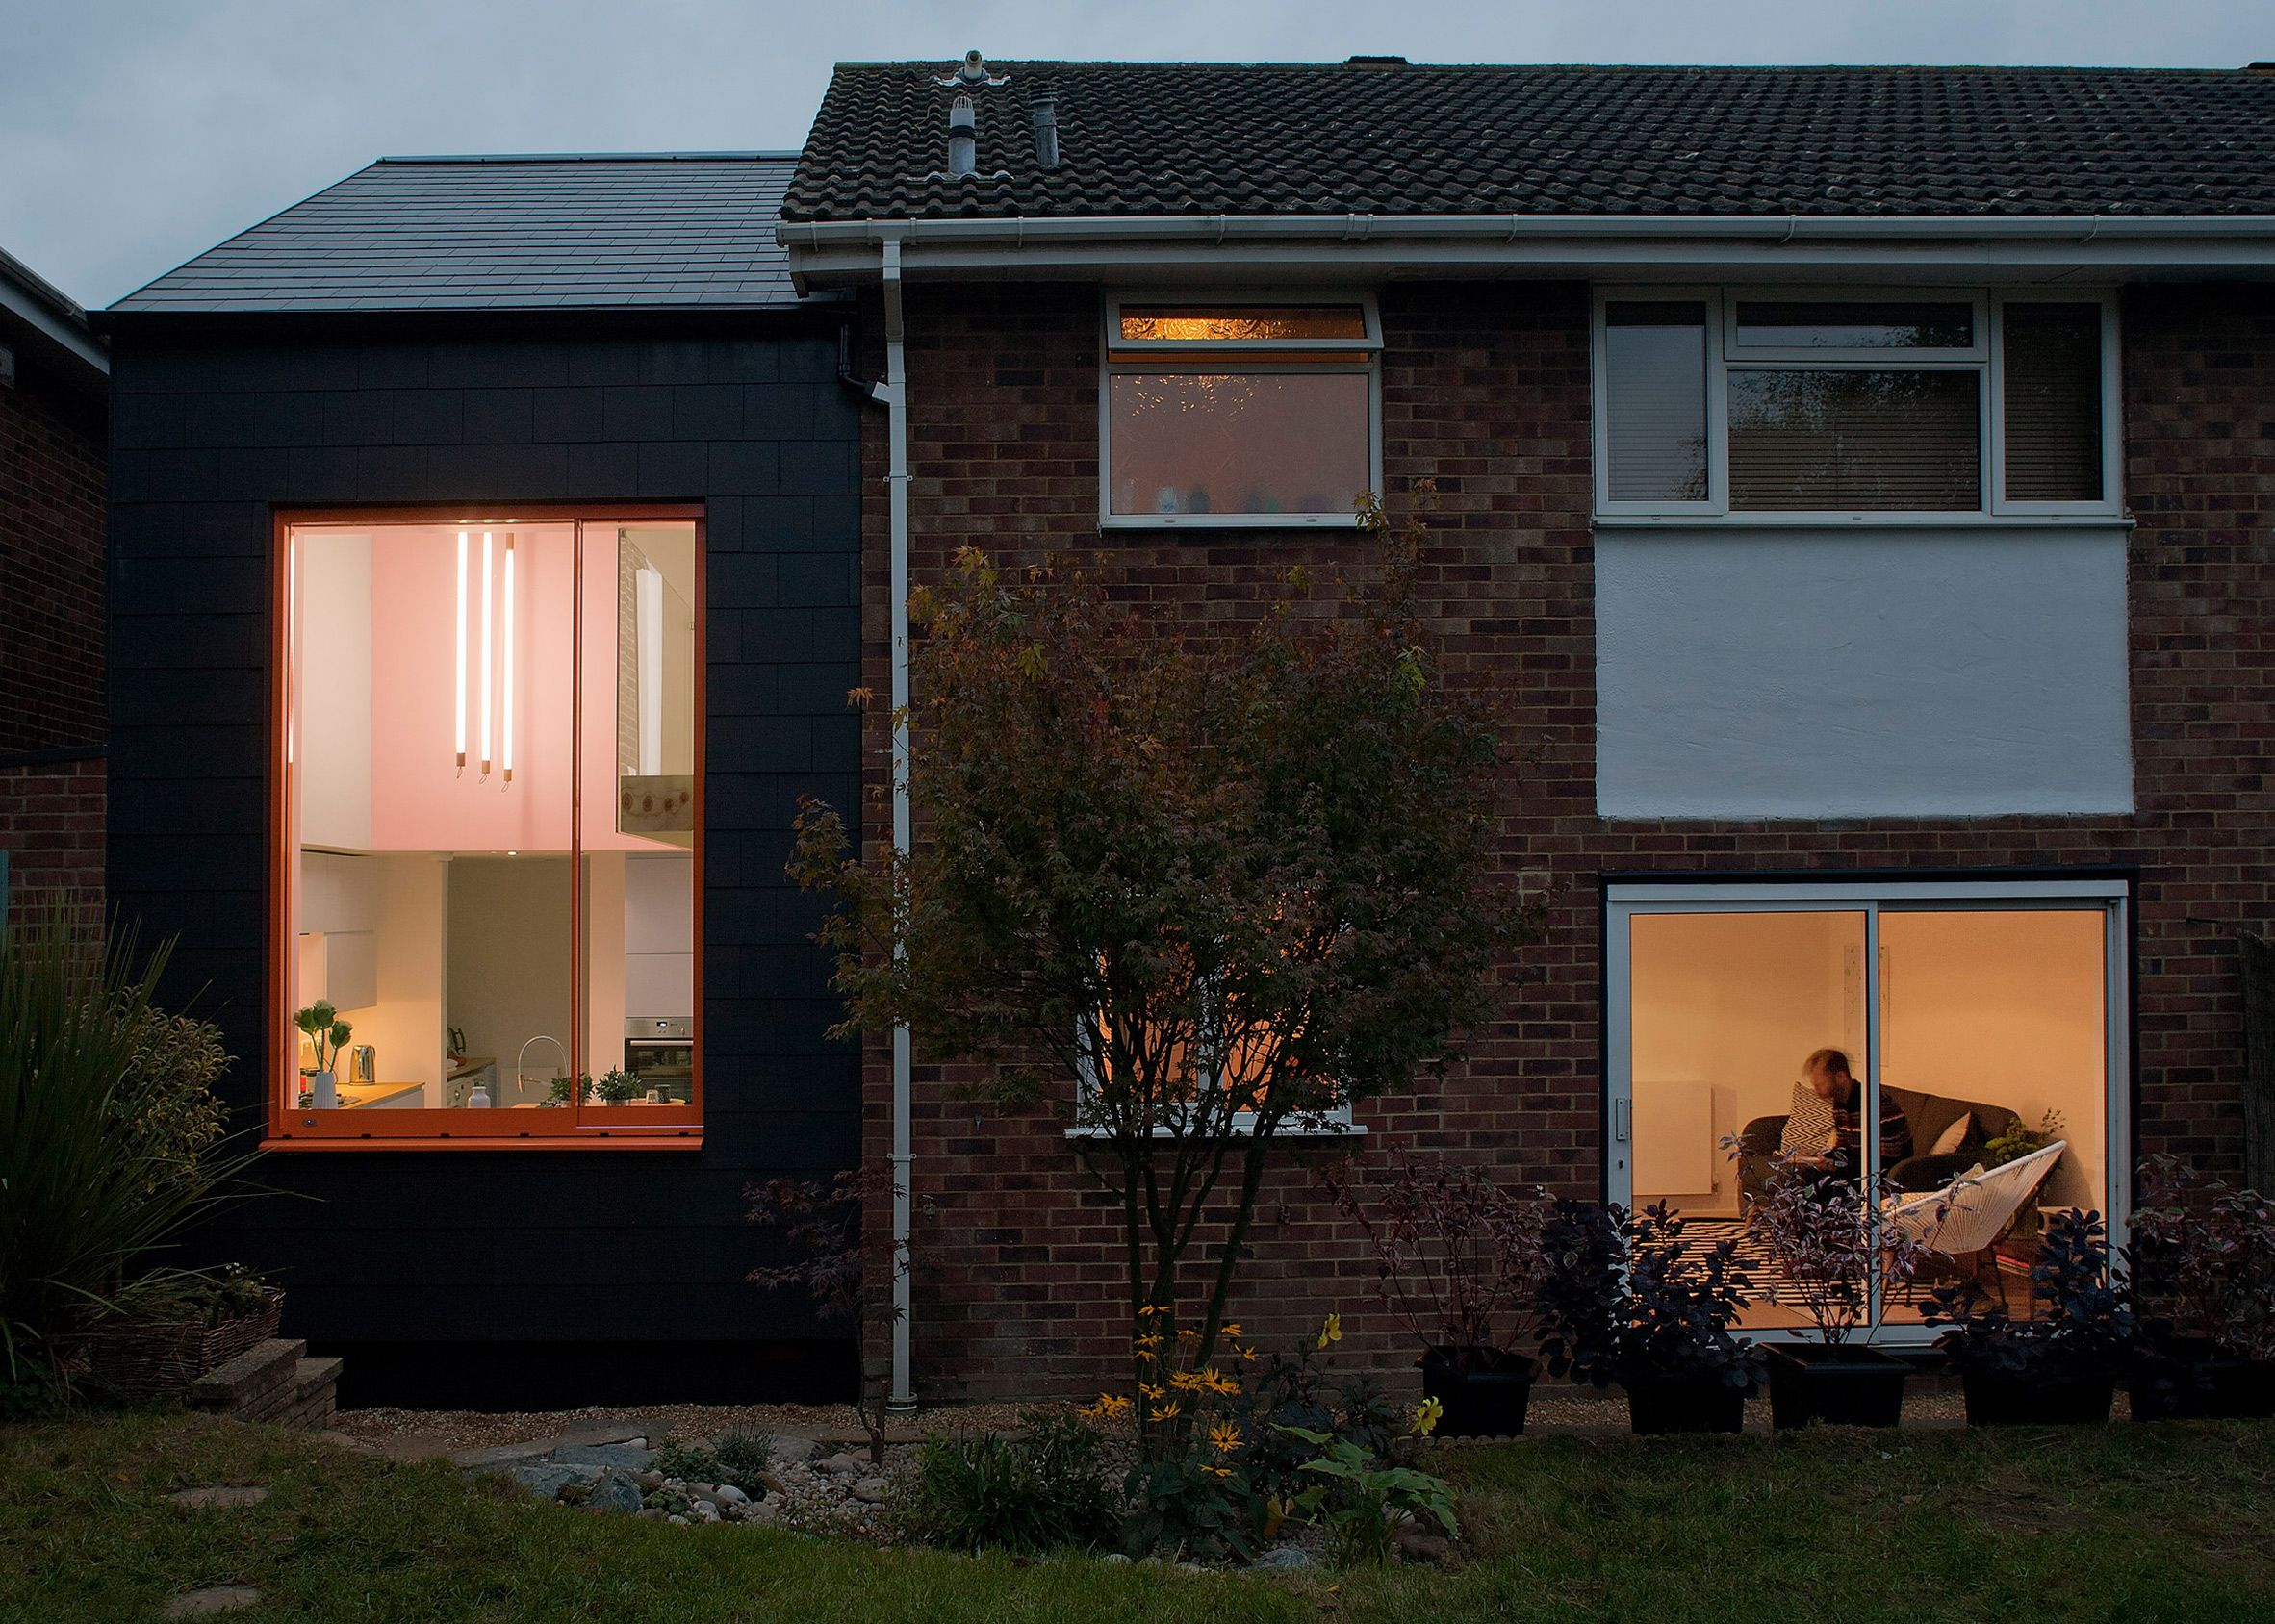 House design england - Lipton Plant Architects Has Updated A 1970s House In Berkshire England With A Small